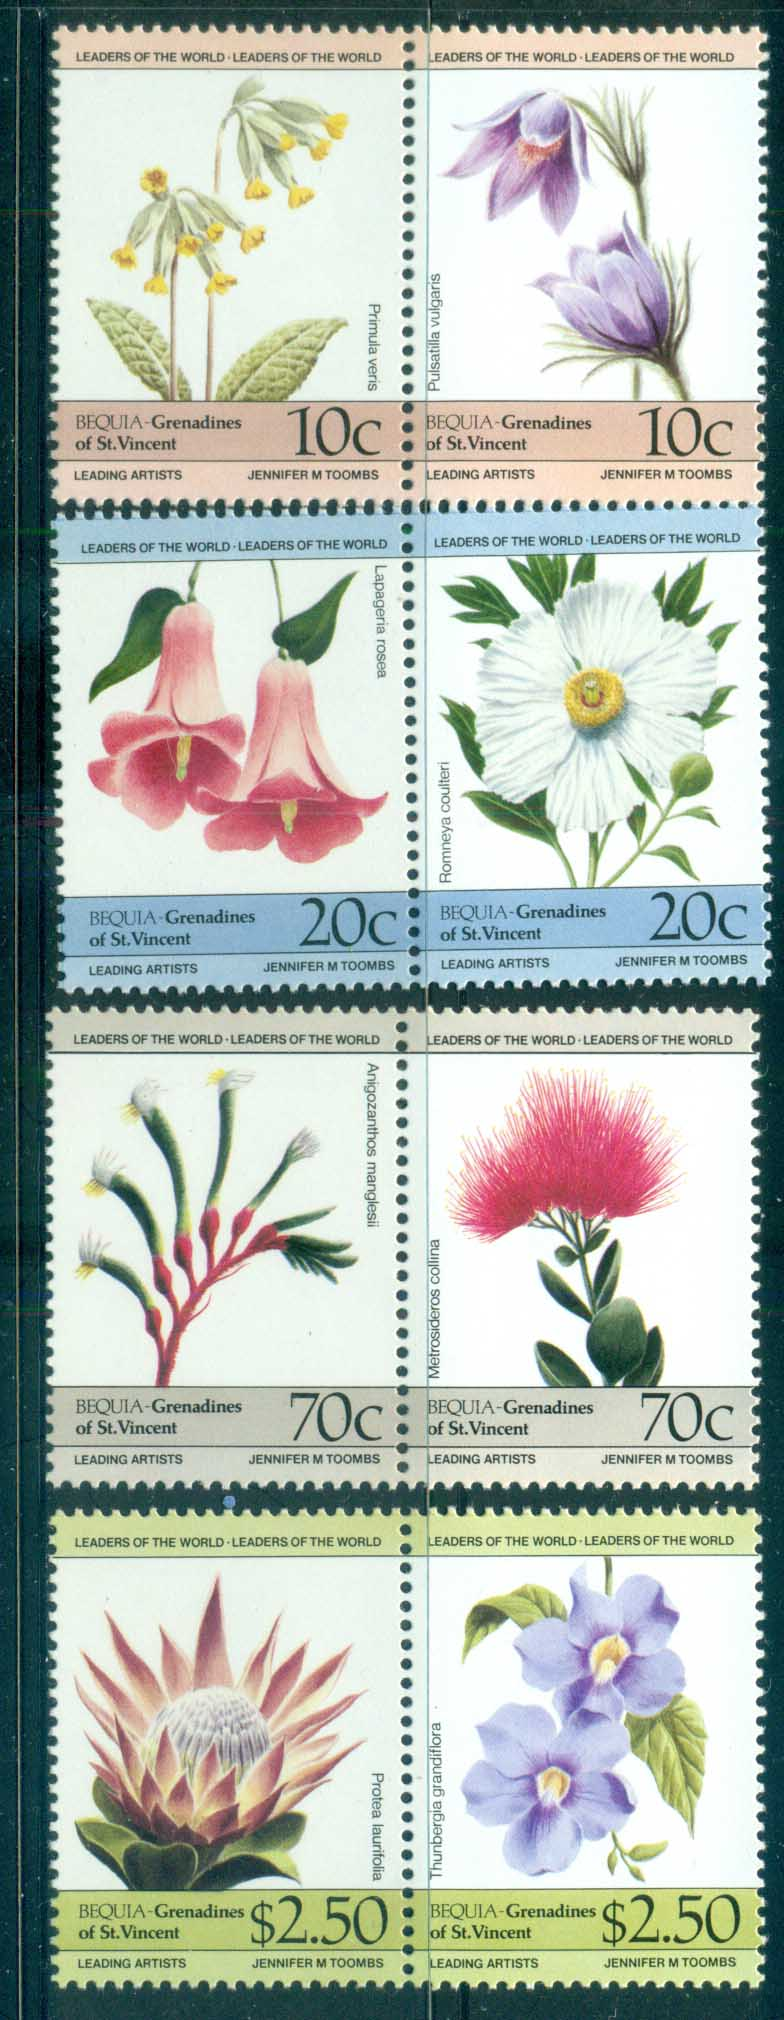 St Vincent Bequia 1985 Flowers MUH lot73027